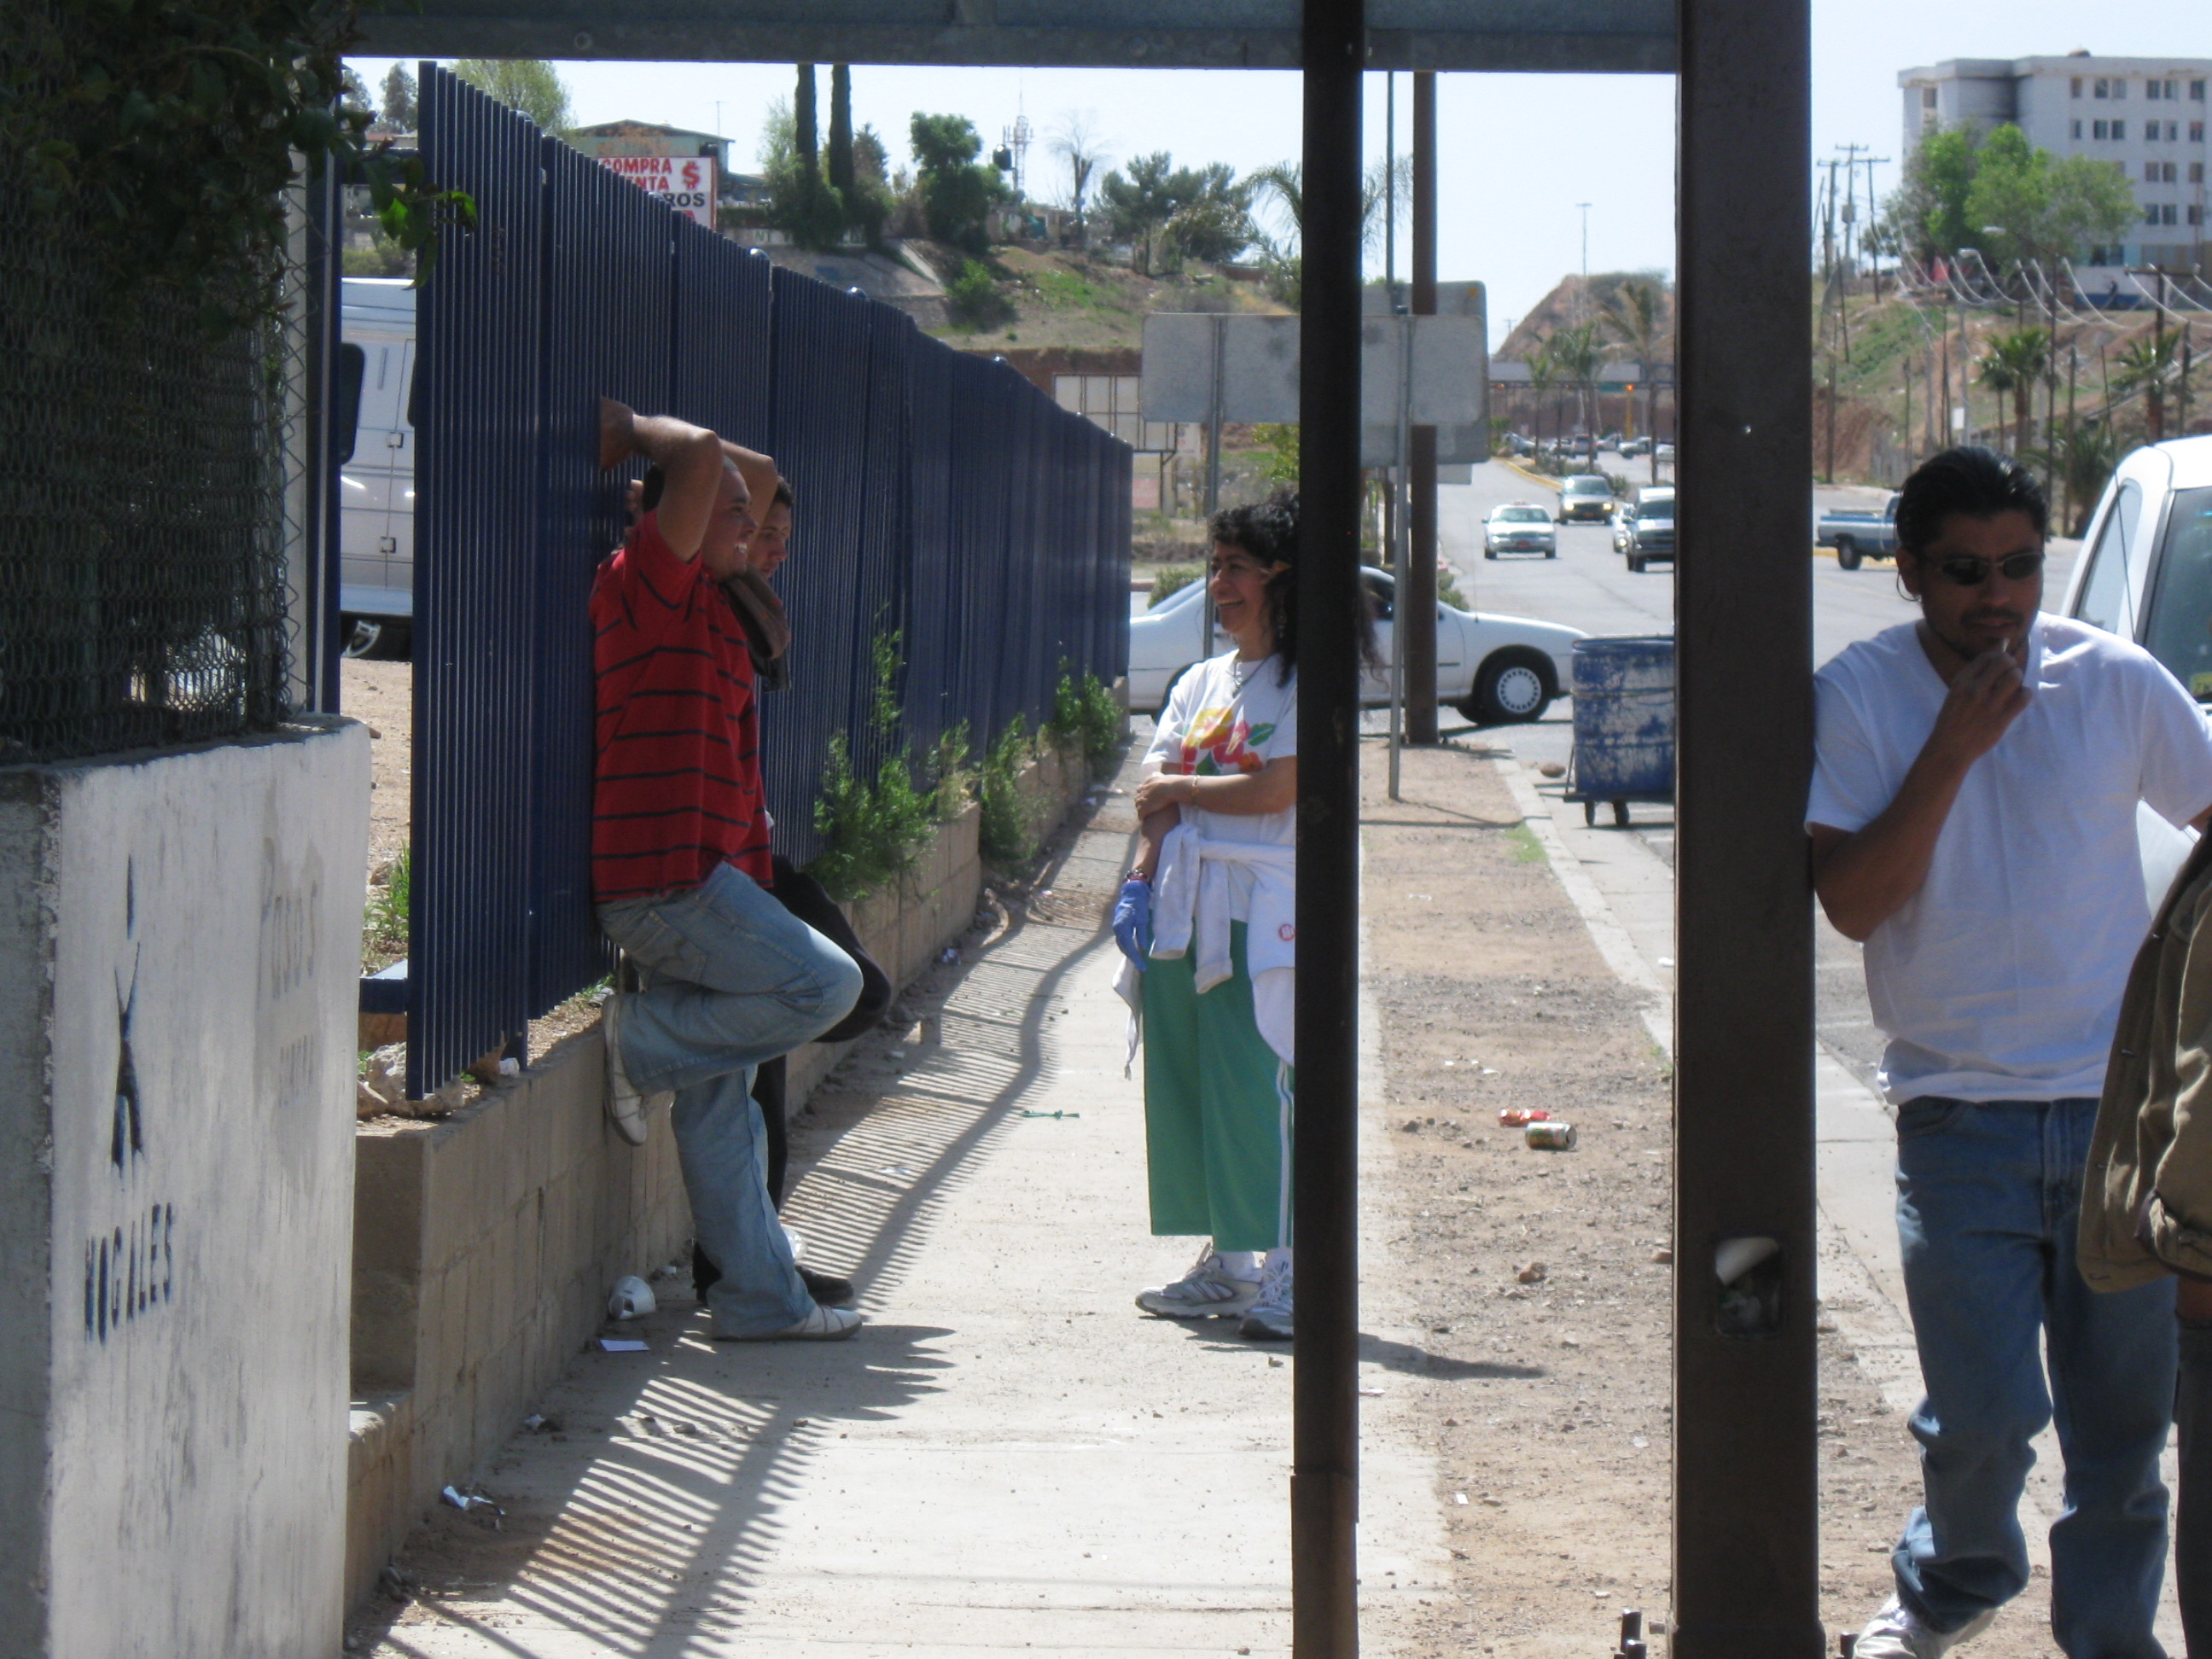 Speaking with people outside the Deported Migrant Service Center.